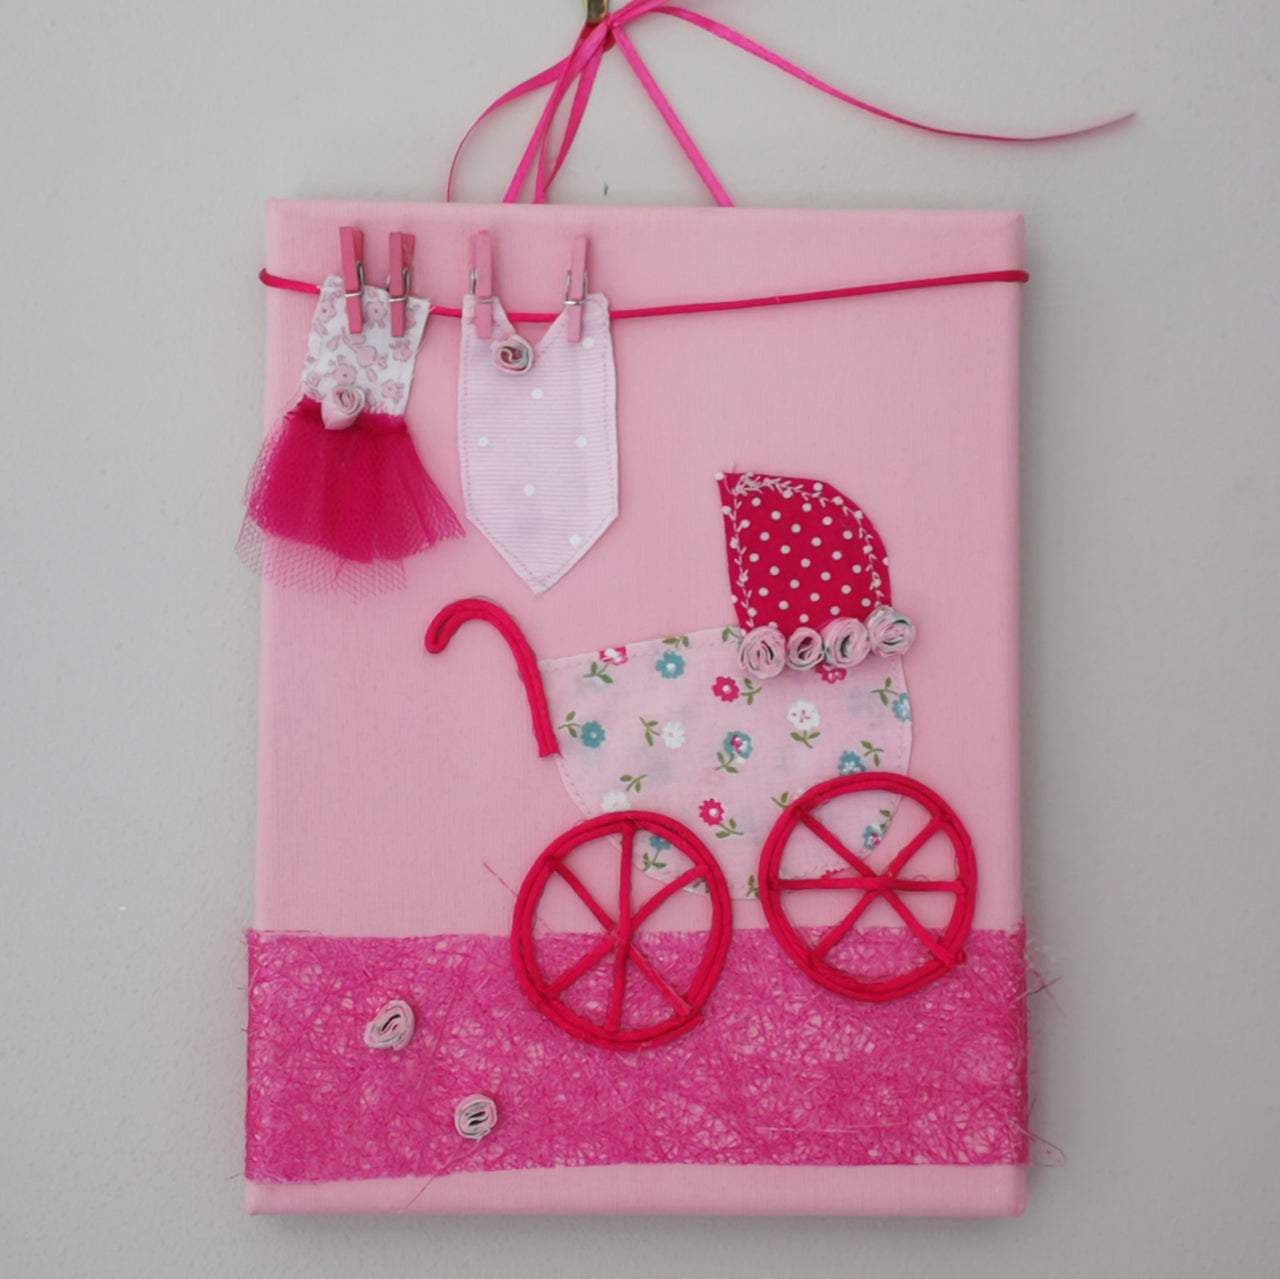 Baby Pram Picture Pink - Rooms for Rascals